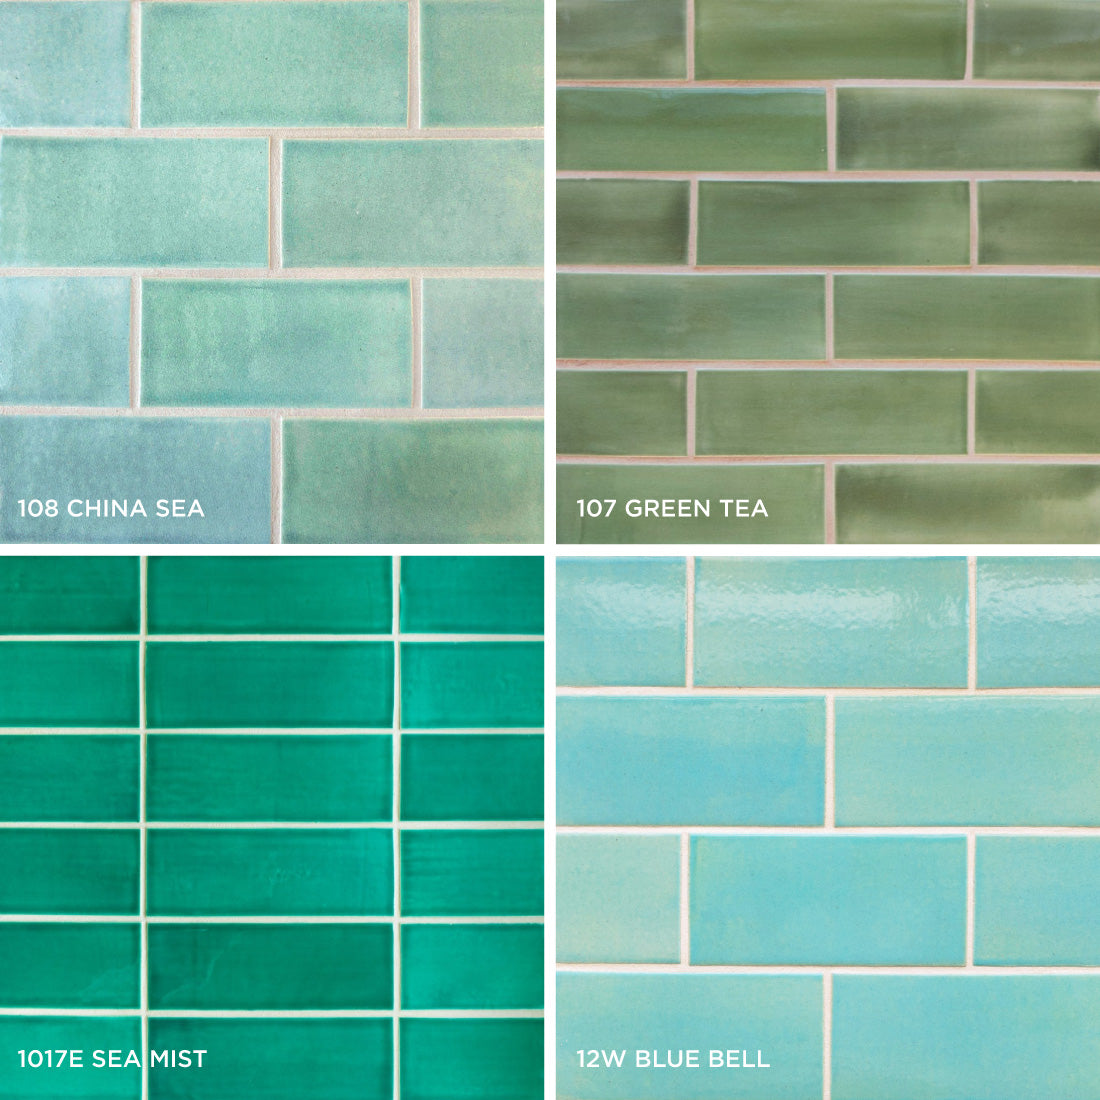 How To Choose The Perfect Subway Tile Color And Pattern Interiors Inside Ideas Interiors design about Everything [magnanprojects.com]